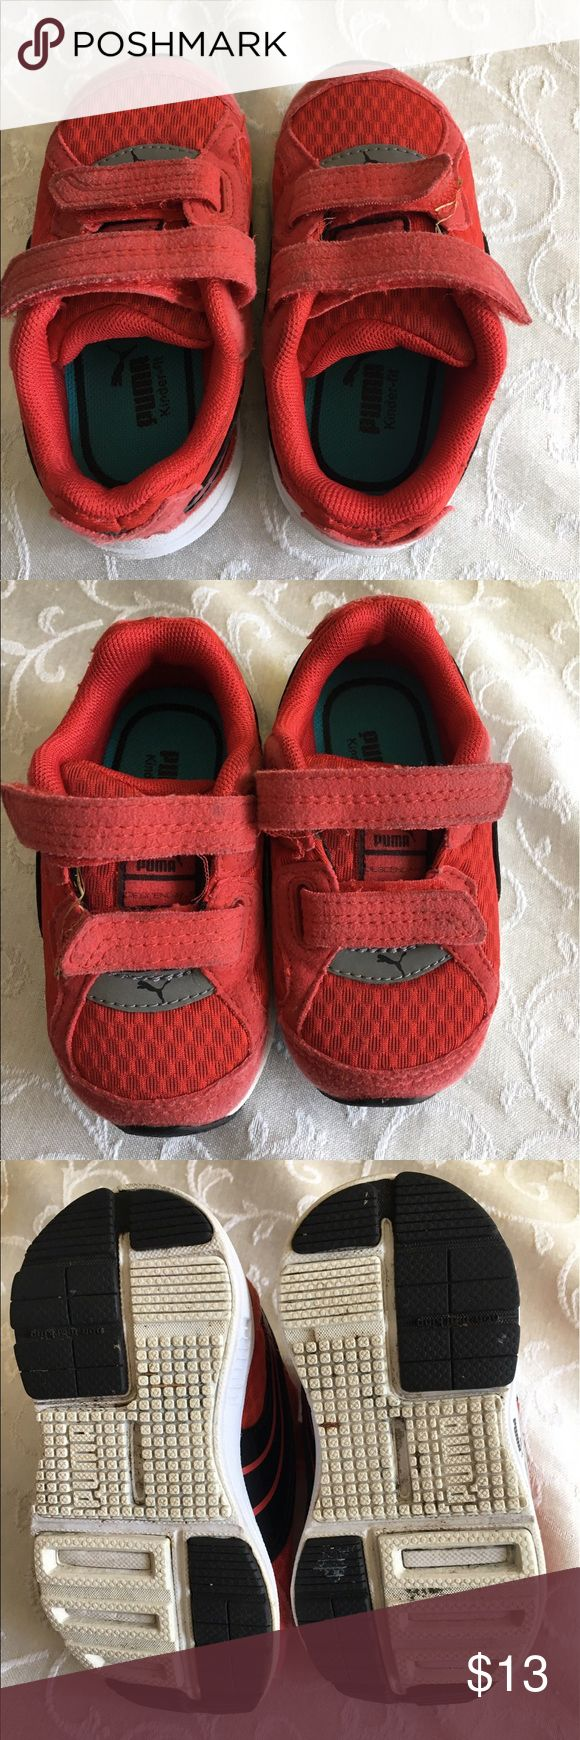 Puma kids red sneakers Puma kids red sneakers with double Velcro closure Puma Shoes Sneakers